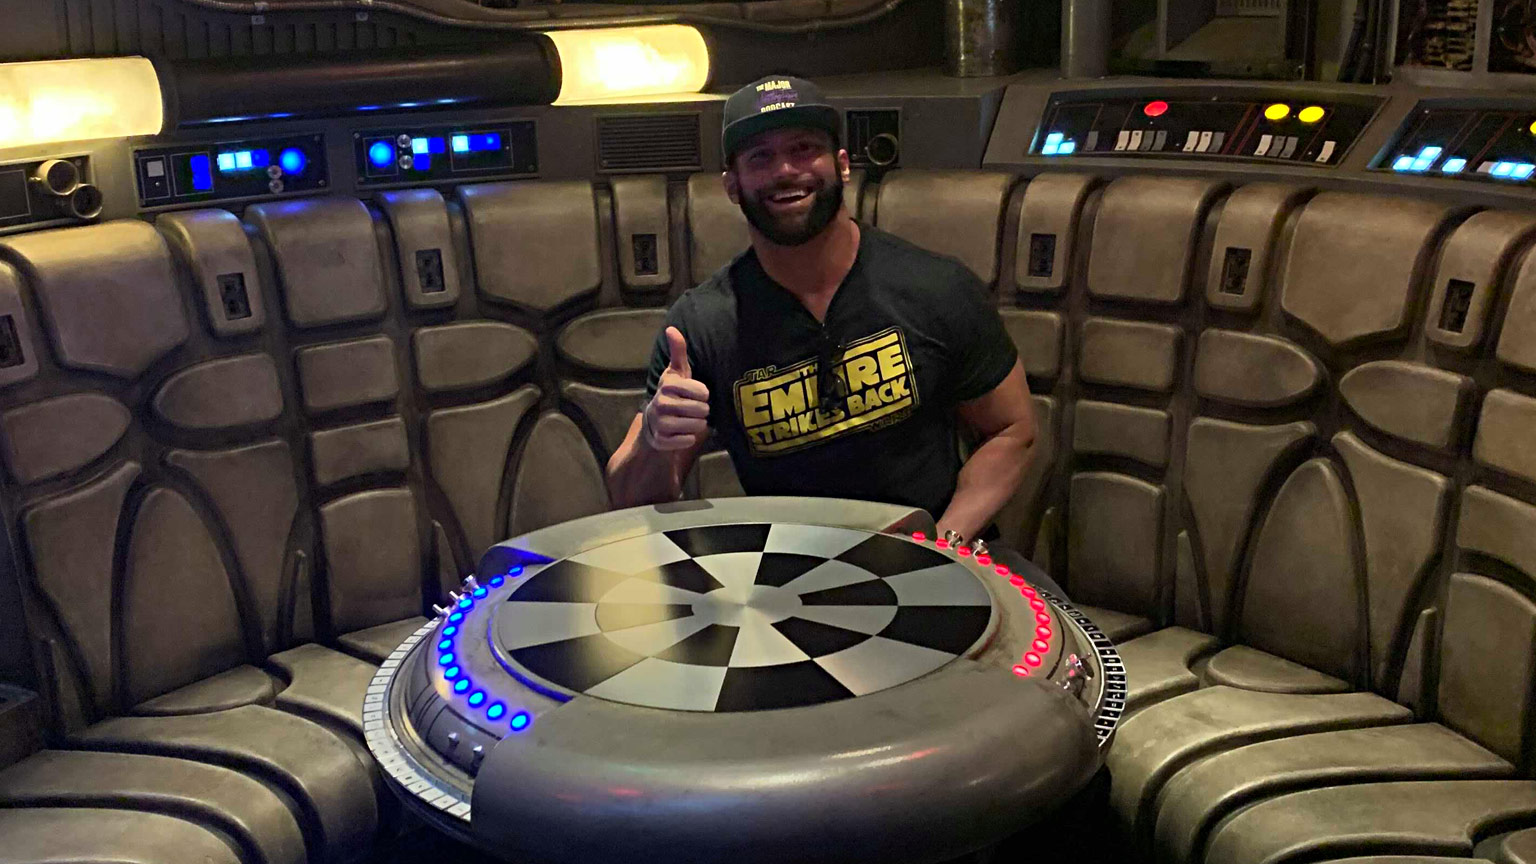 WWE's Zack Ryder on Star Wars Collecting and Facing Darth